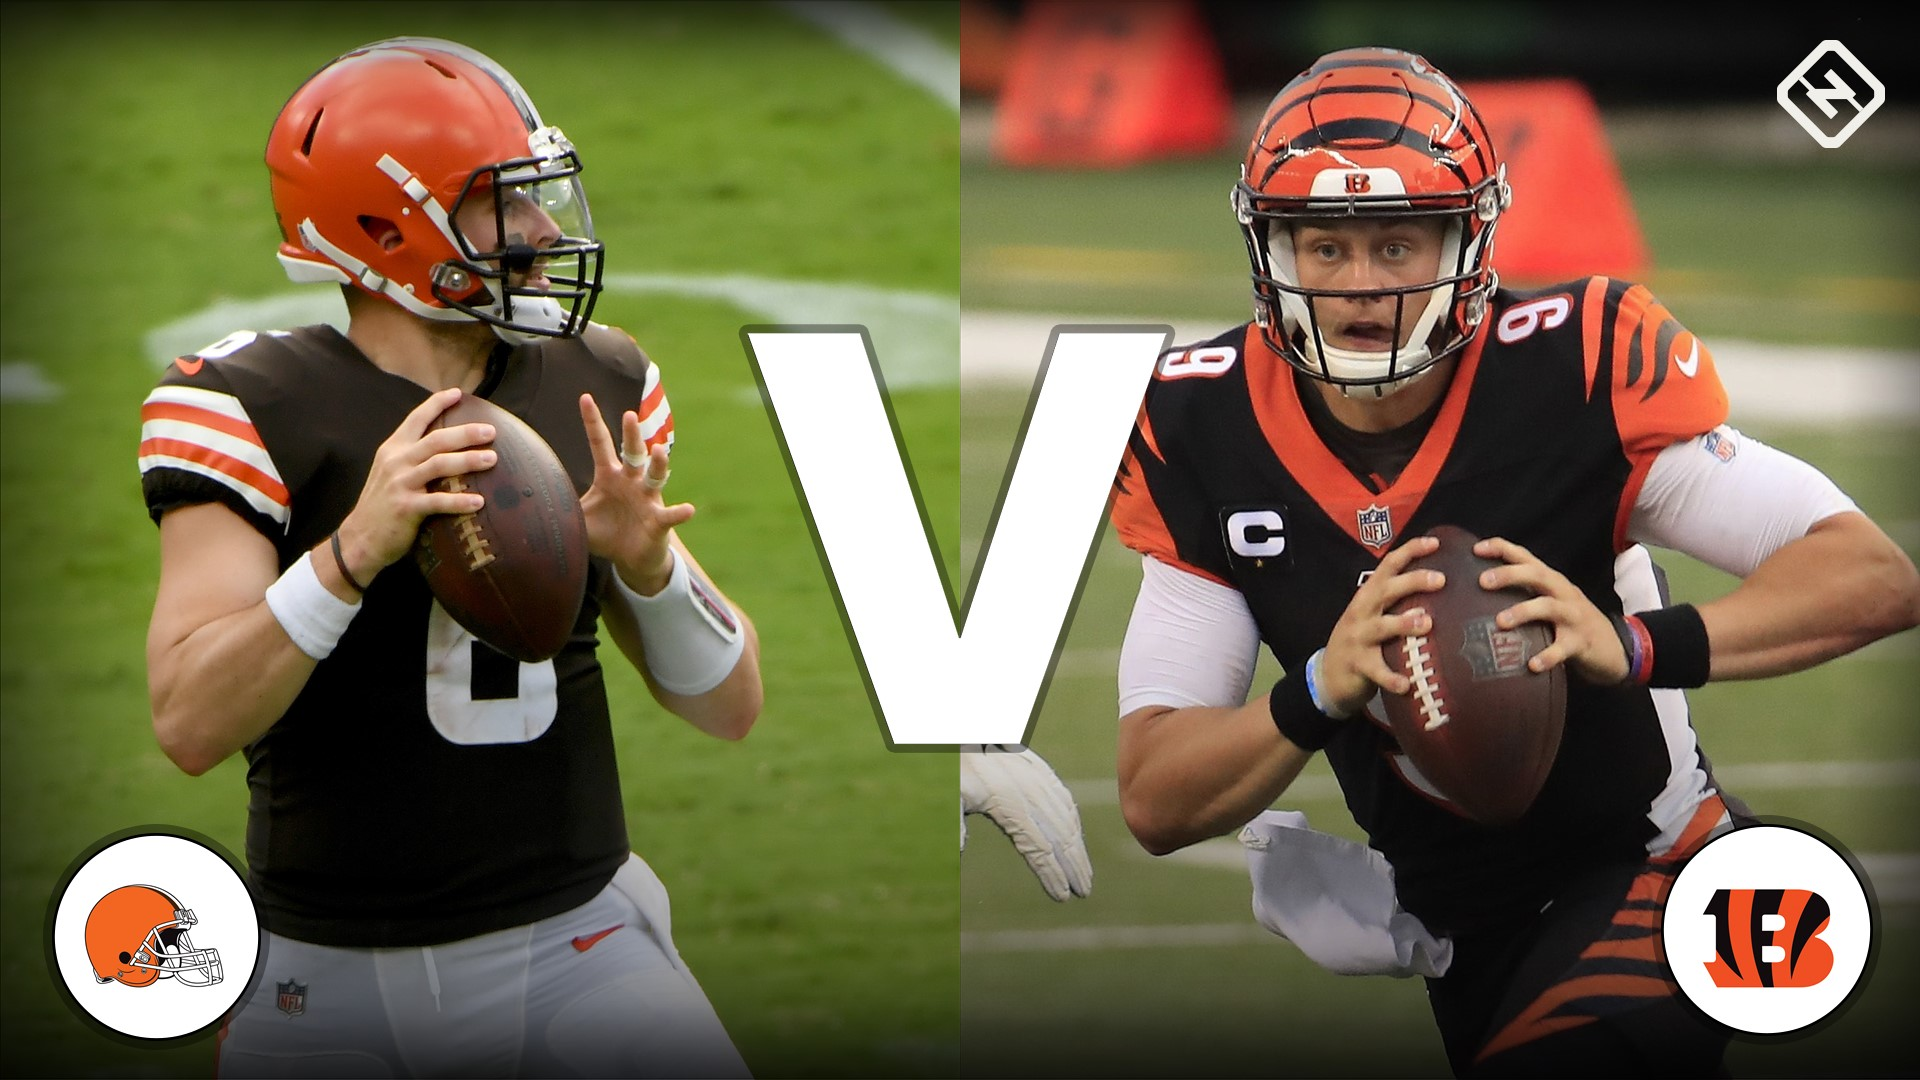 What Time Is The Nfl Game Tonight Tv Schedule Channel For Browns Vs Bengals In Week 2 Sporting News